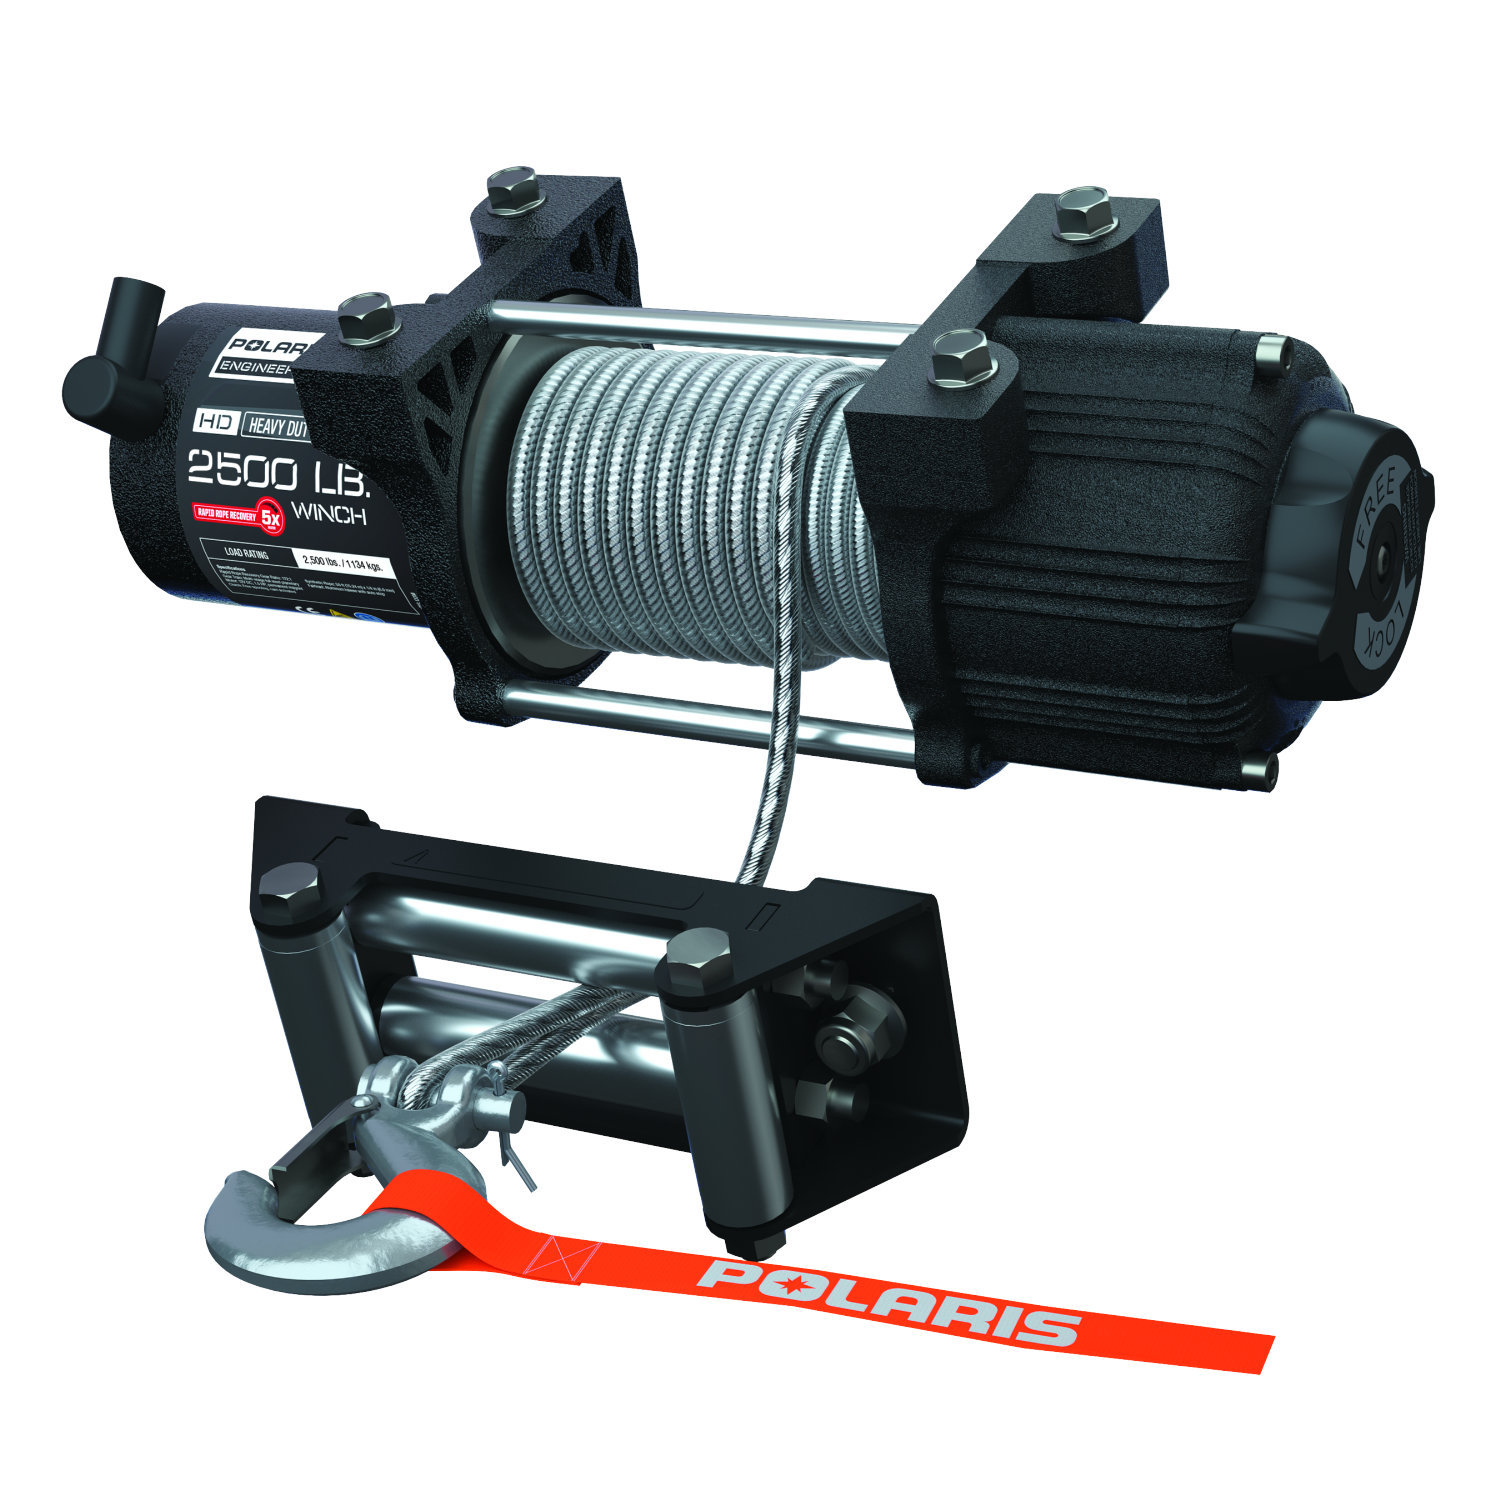 2,500 lb. Capacity Winch Kit with 50 ft. Steel Cable